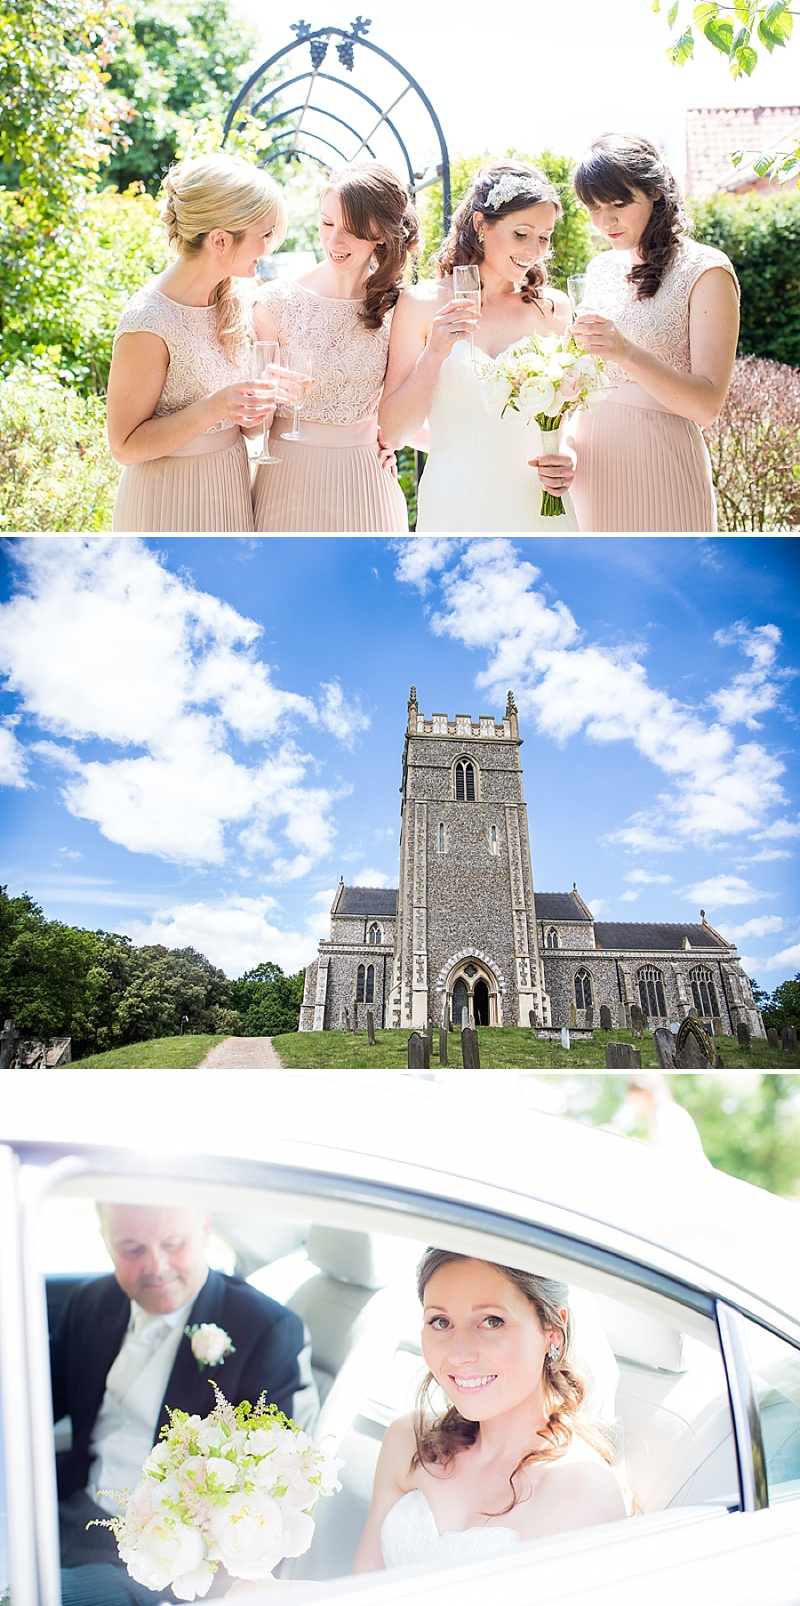 Elegant Wedding At Holkham Hall Norfolk With Bride In Hepburn By Suzanne Neville With Rachel Simpson Bridal Shoes And Nude Bridemaids Dresses From Ted Baker Images From Katherine Ashdown_0007